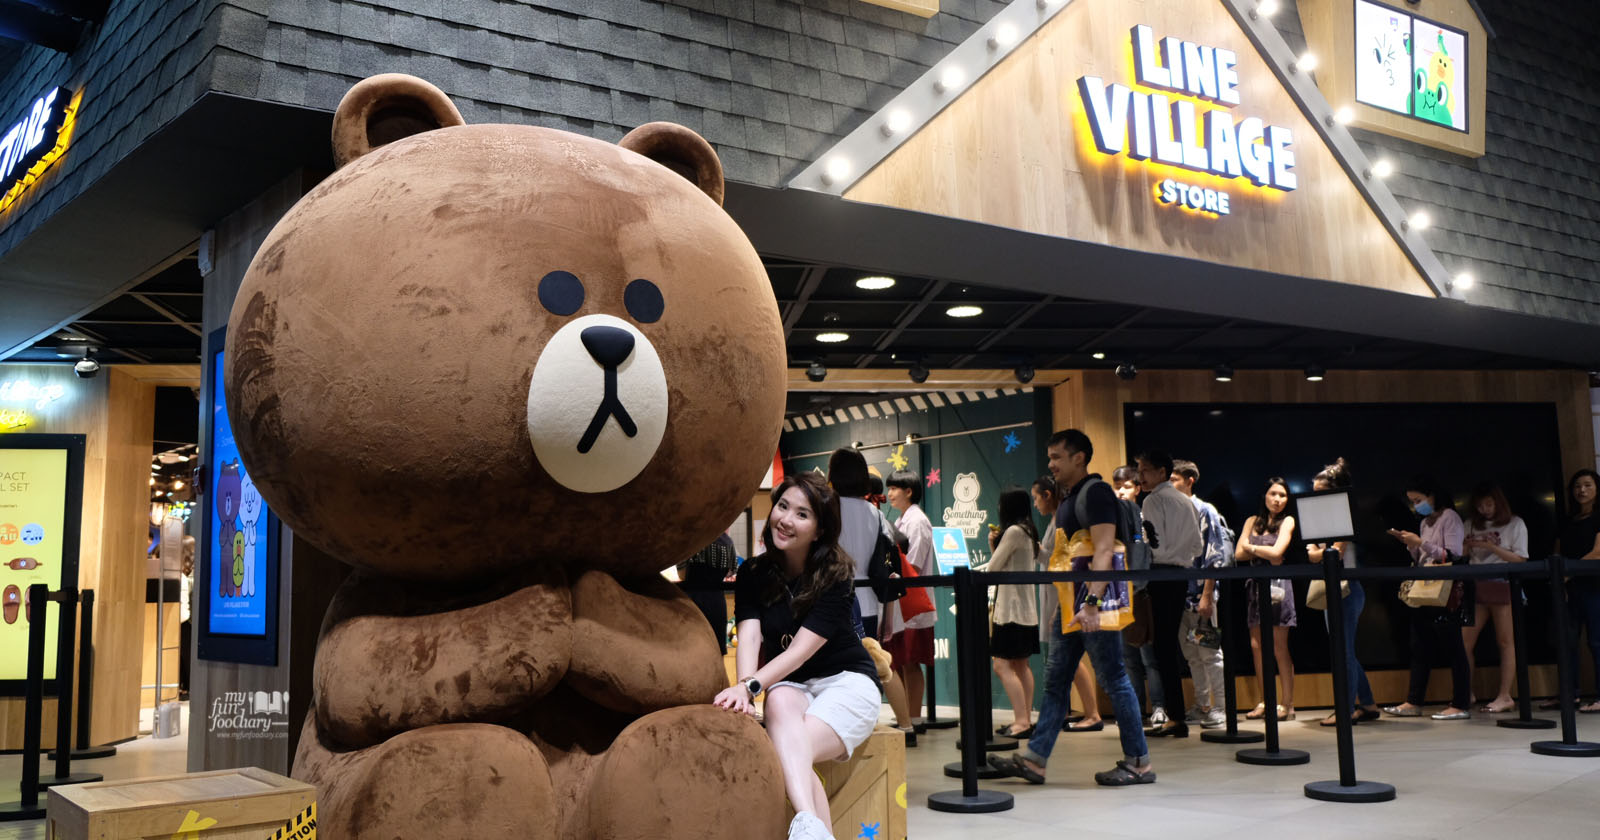 Thailand Line Village Store Is Now Open In Bangkok